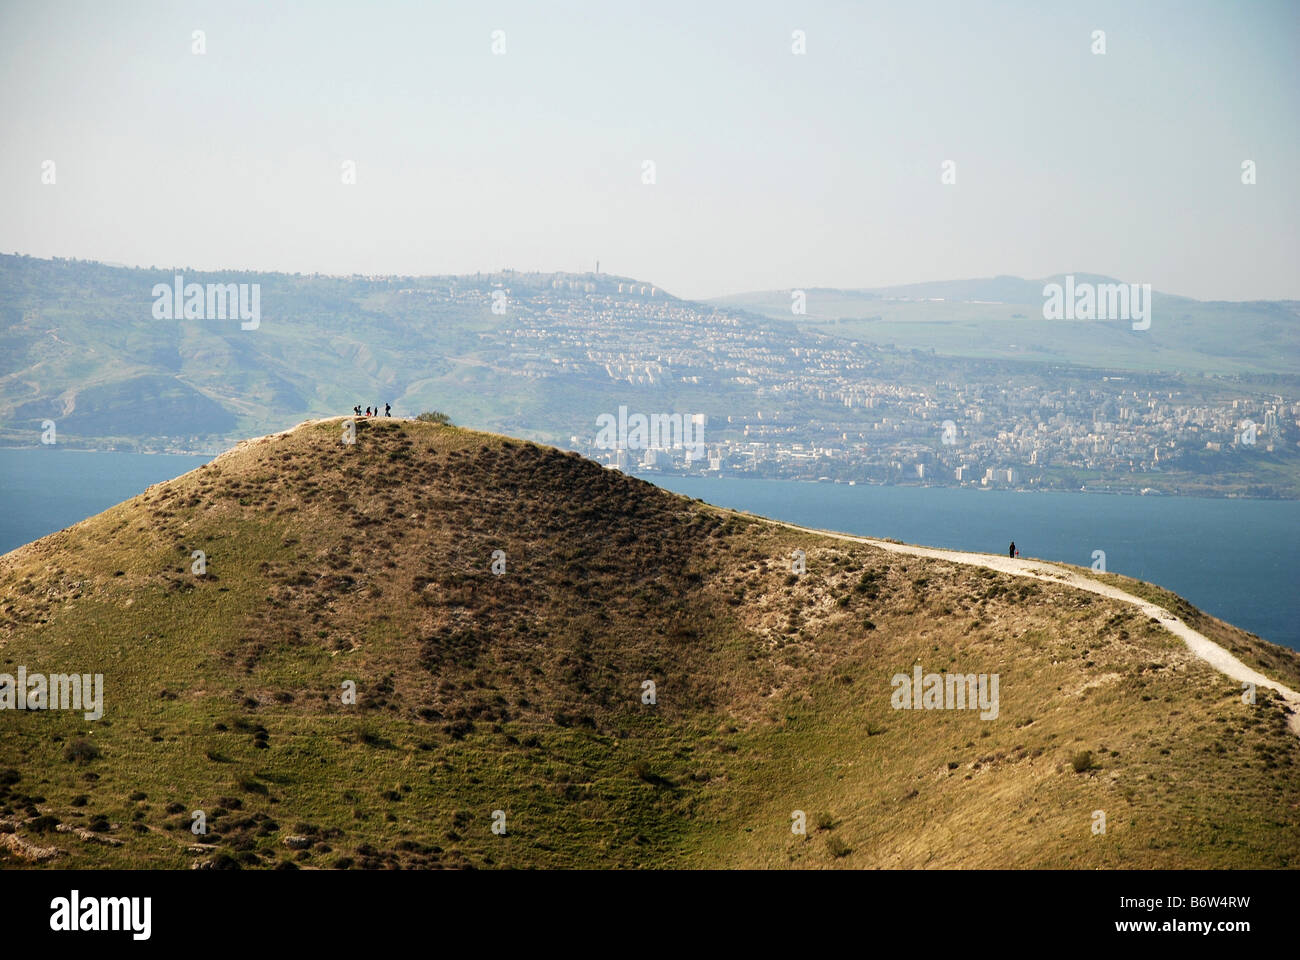 Inspirational view of hikers above the Golan mountain plateau over looking the Sea of Galilee. Stock Photo